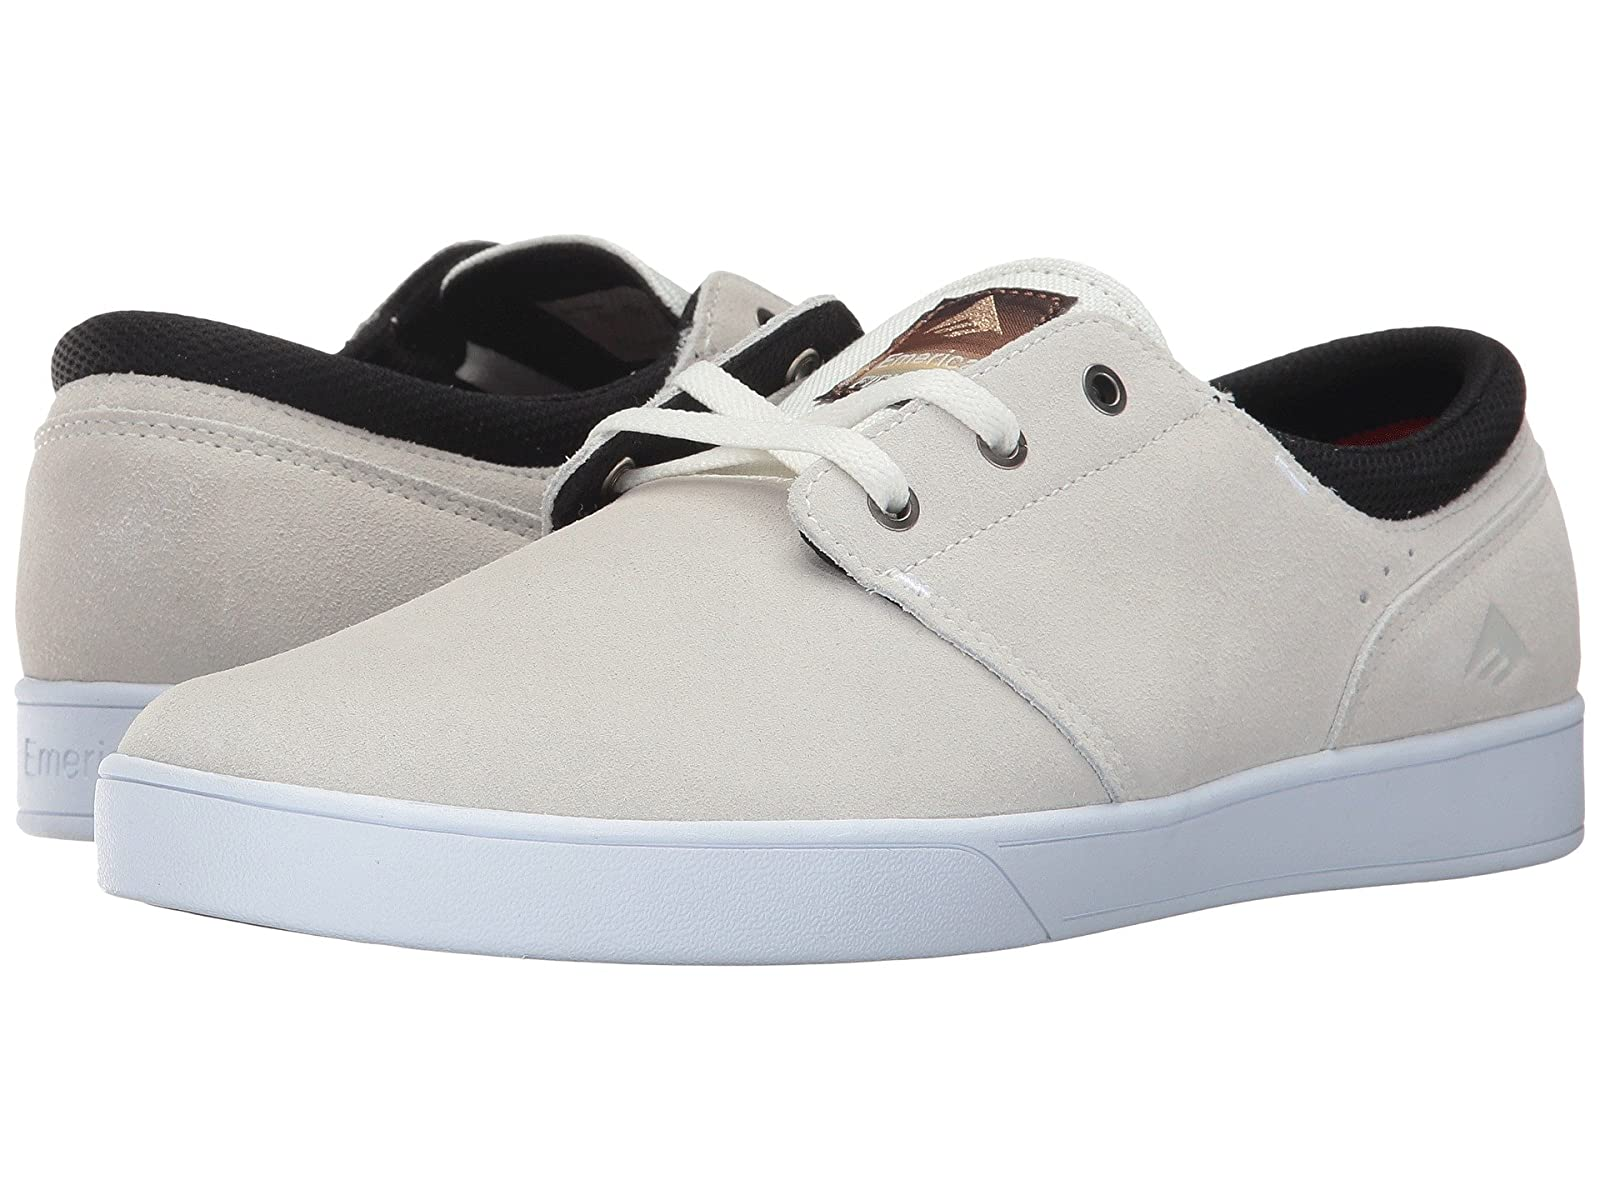 Man's/Woman's:Emerica The Figueroa most : To make the most Figueroa of materials dab839